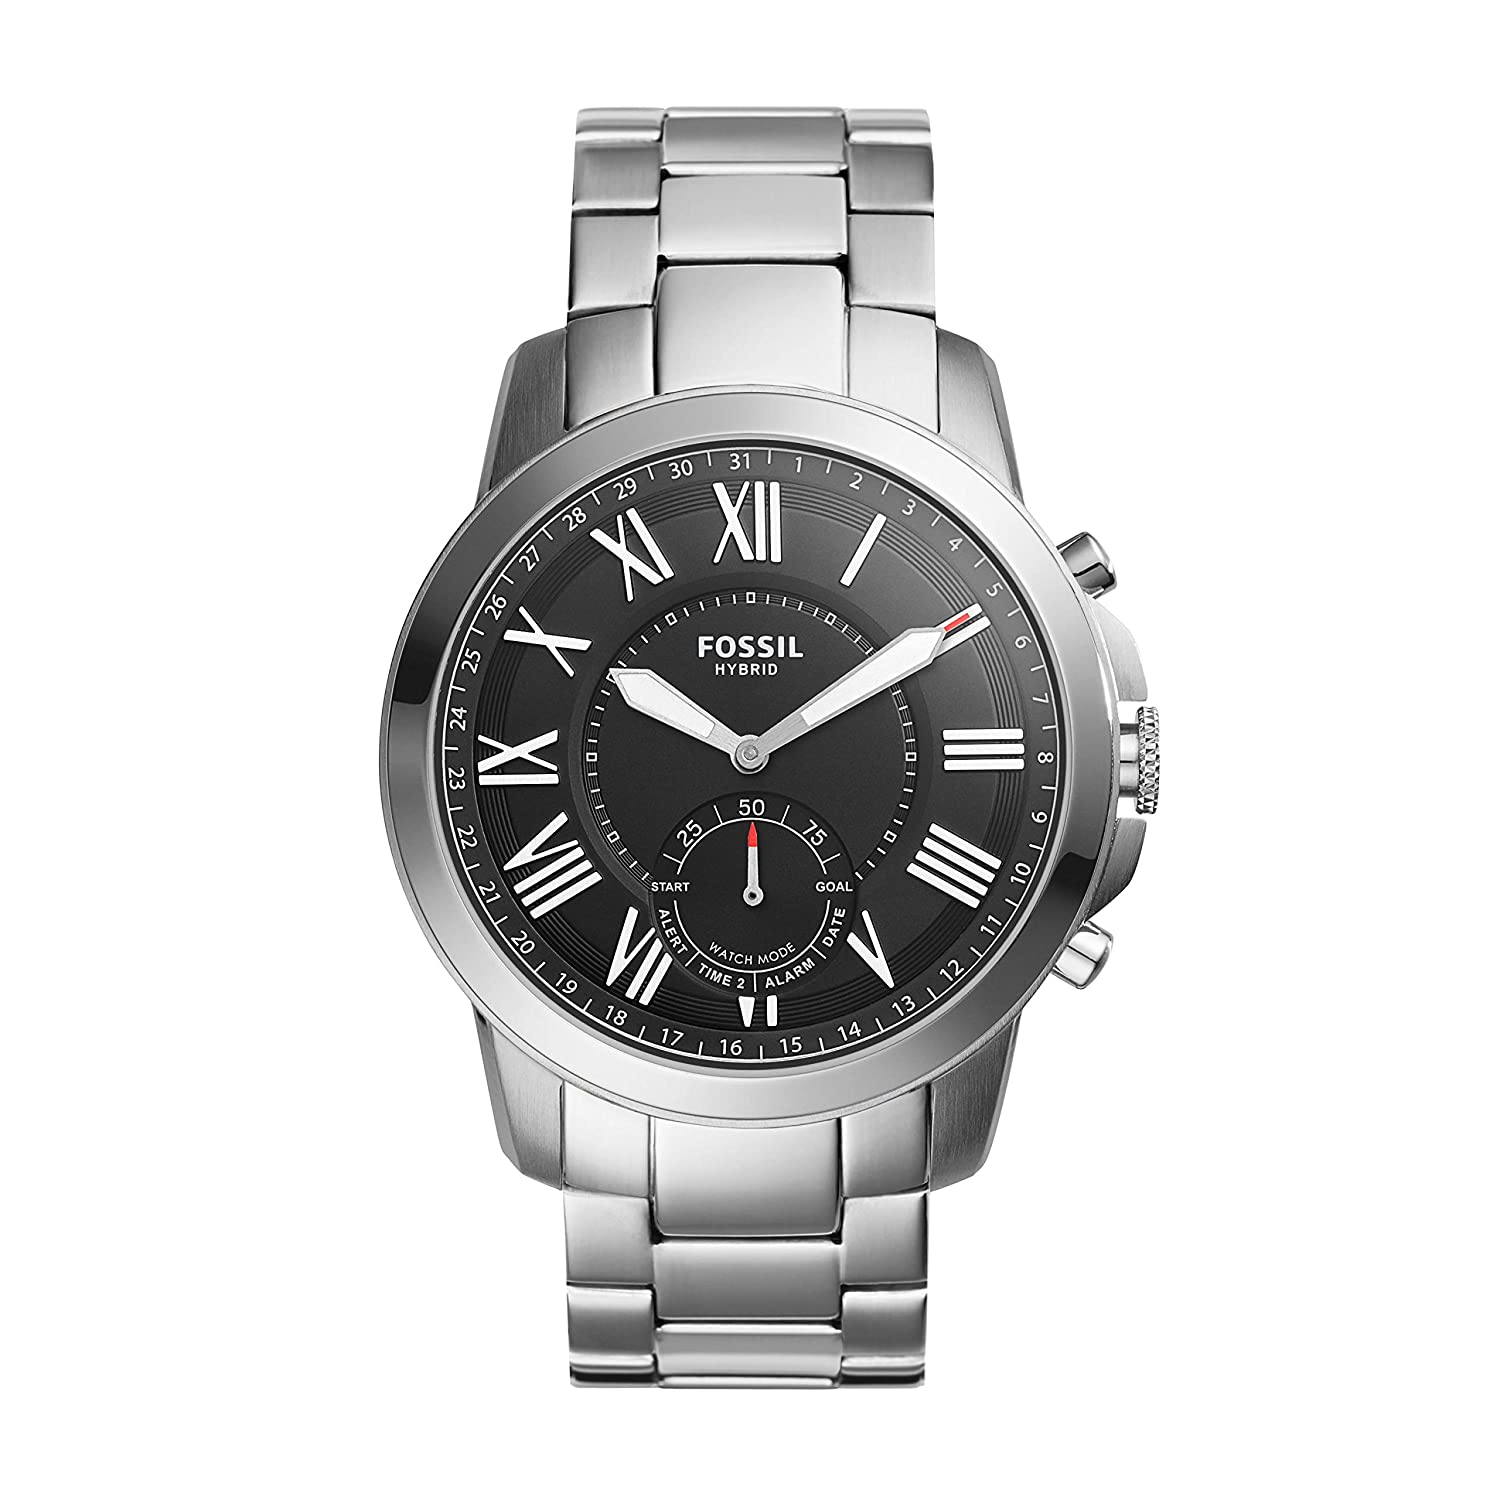 Amazon.com: Fossil Hybrid Smartwatch - Q Grant Stainless ...